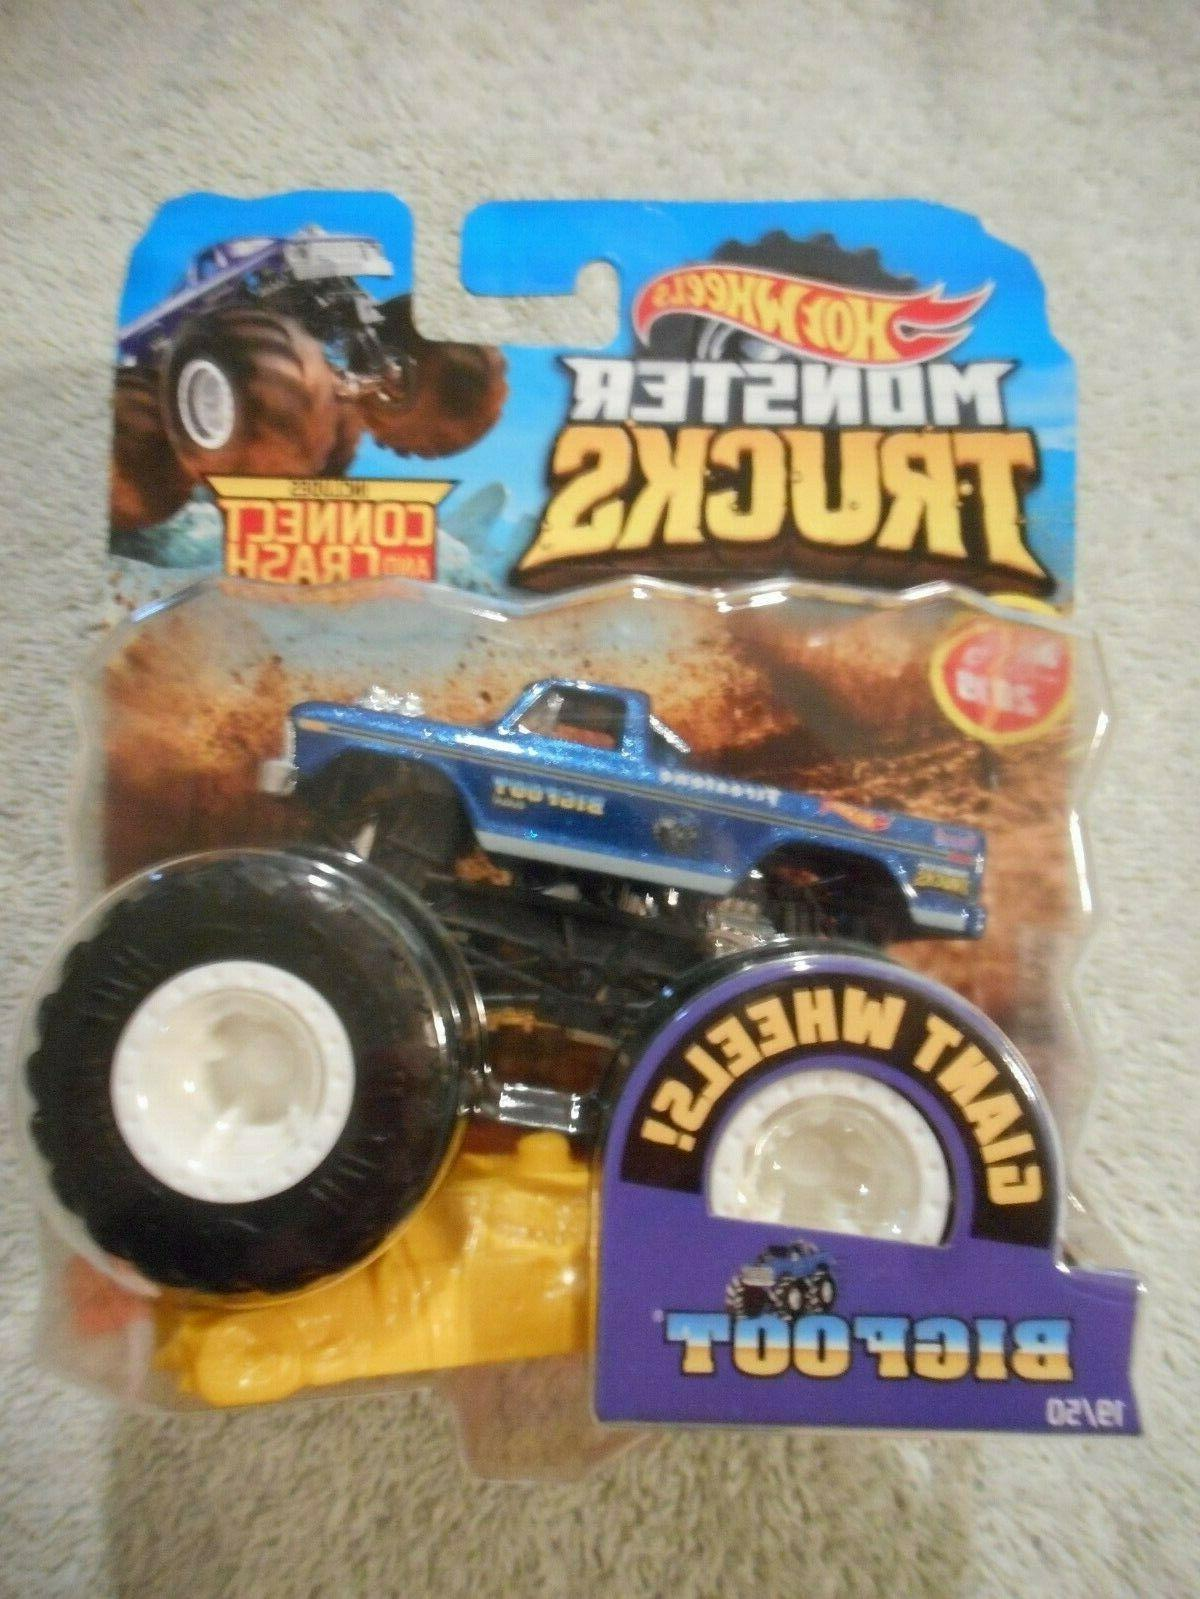 2019 monster truck bigfoot includes connect